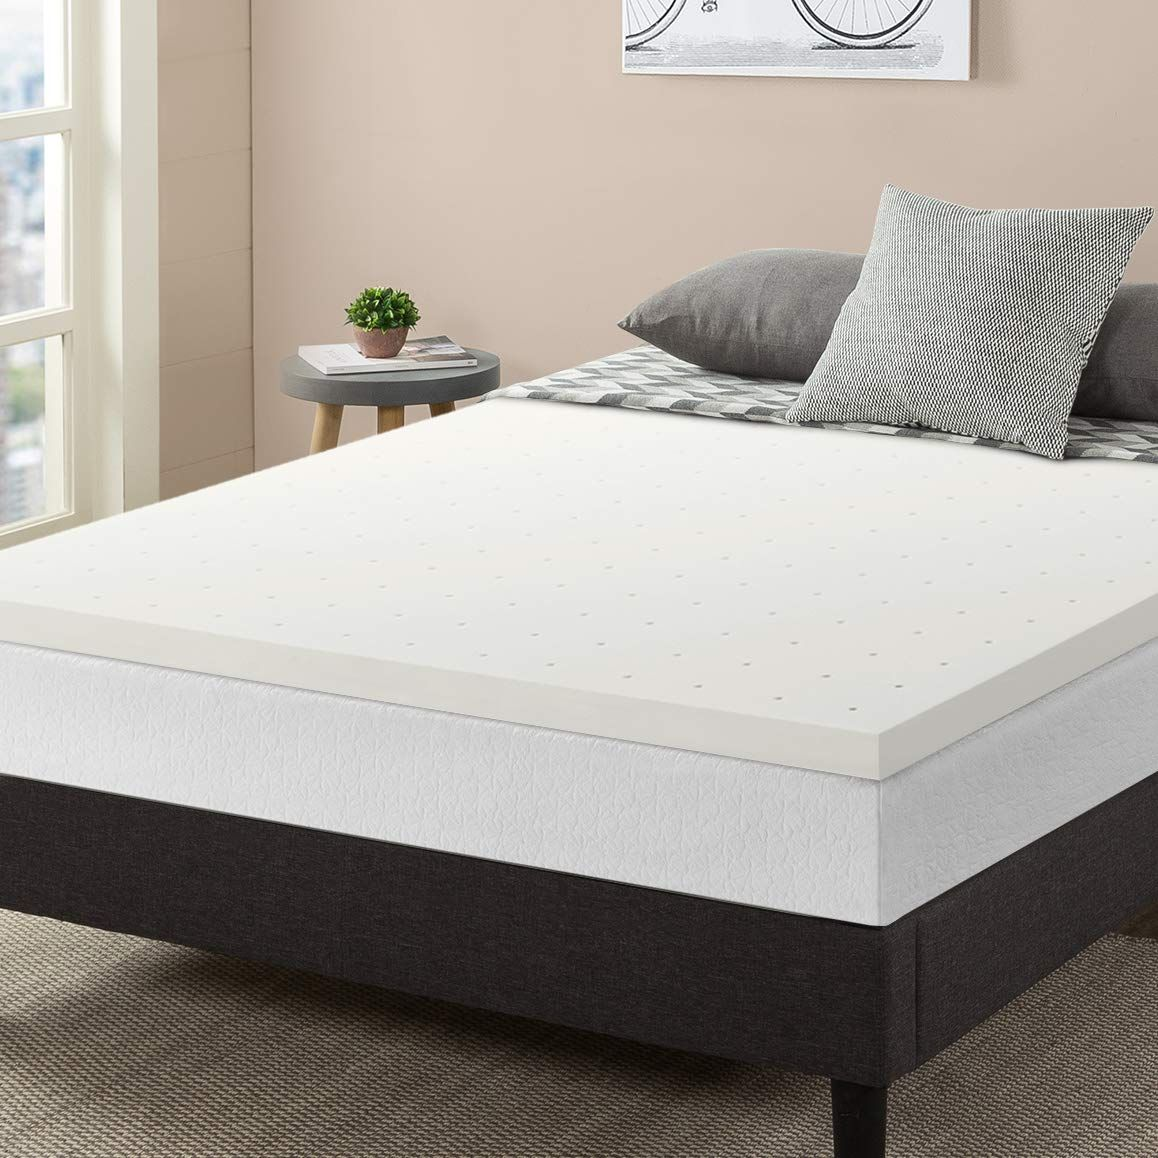 Top 10 Best Twin Xl Mattress Topper Reviews In 2020 In 2020 Queen Mattress Topper Foam Mattress Topper Mattress Topper